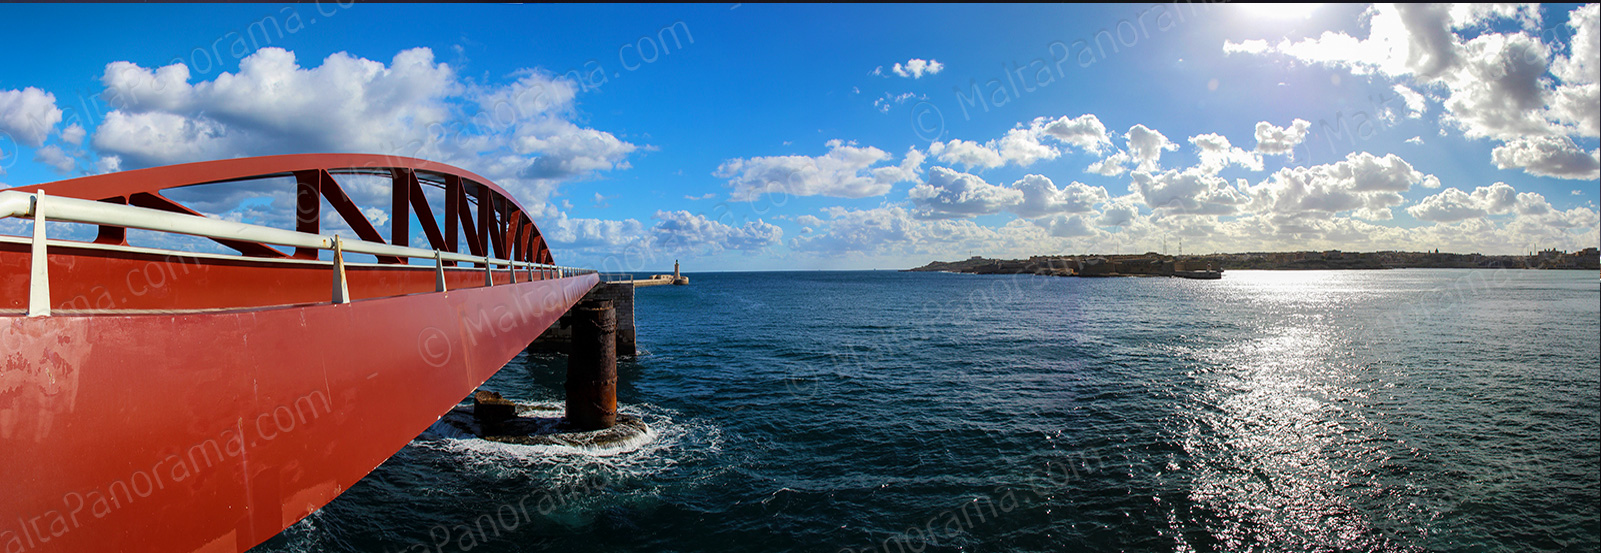 St.Elmo Bridge - Valletta Breakwater